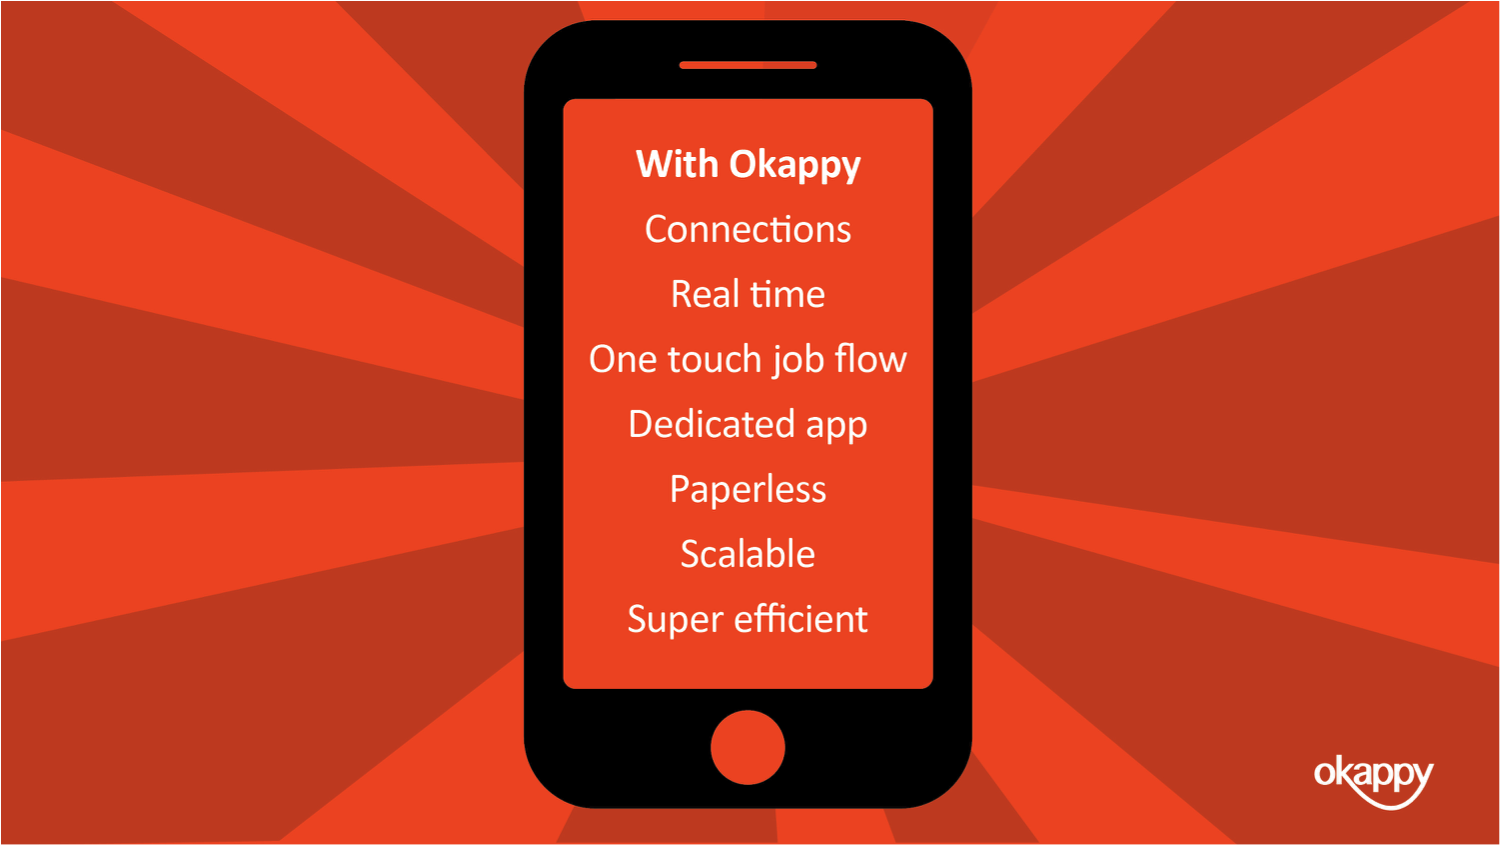 Workforce management improvements with Okappy